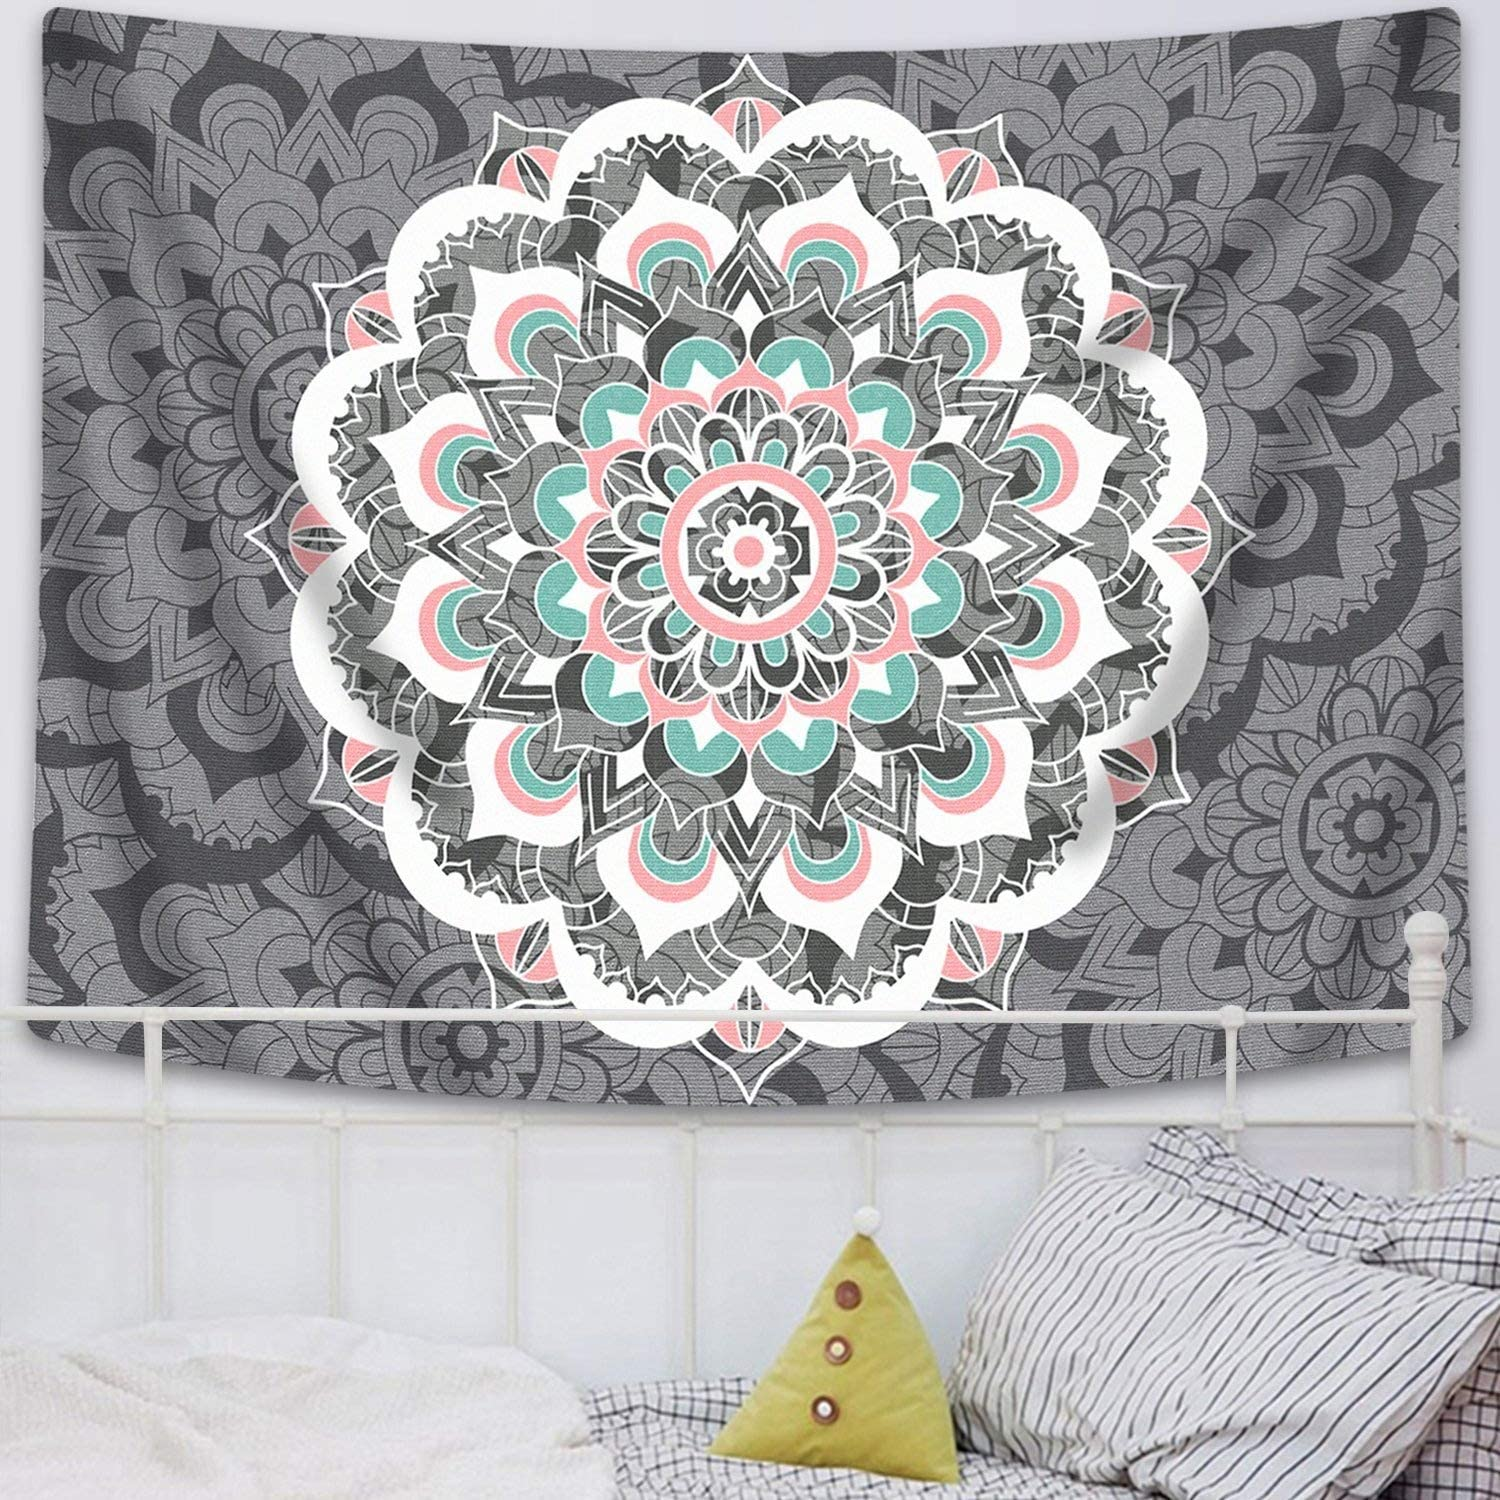 "Sunm Boutique Tapestry Wall Hanging Indian Mandala Tapestry Bohemian Tapestry Hippie Tapestry Psychedelic Tapestry Wall Decor Dorm Decor (Colorful, 70.8""x 92.5"")"